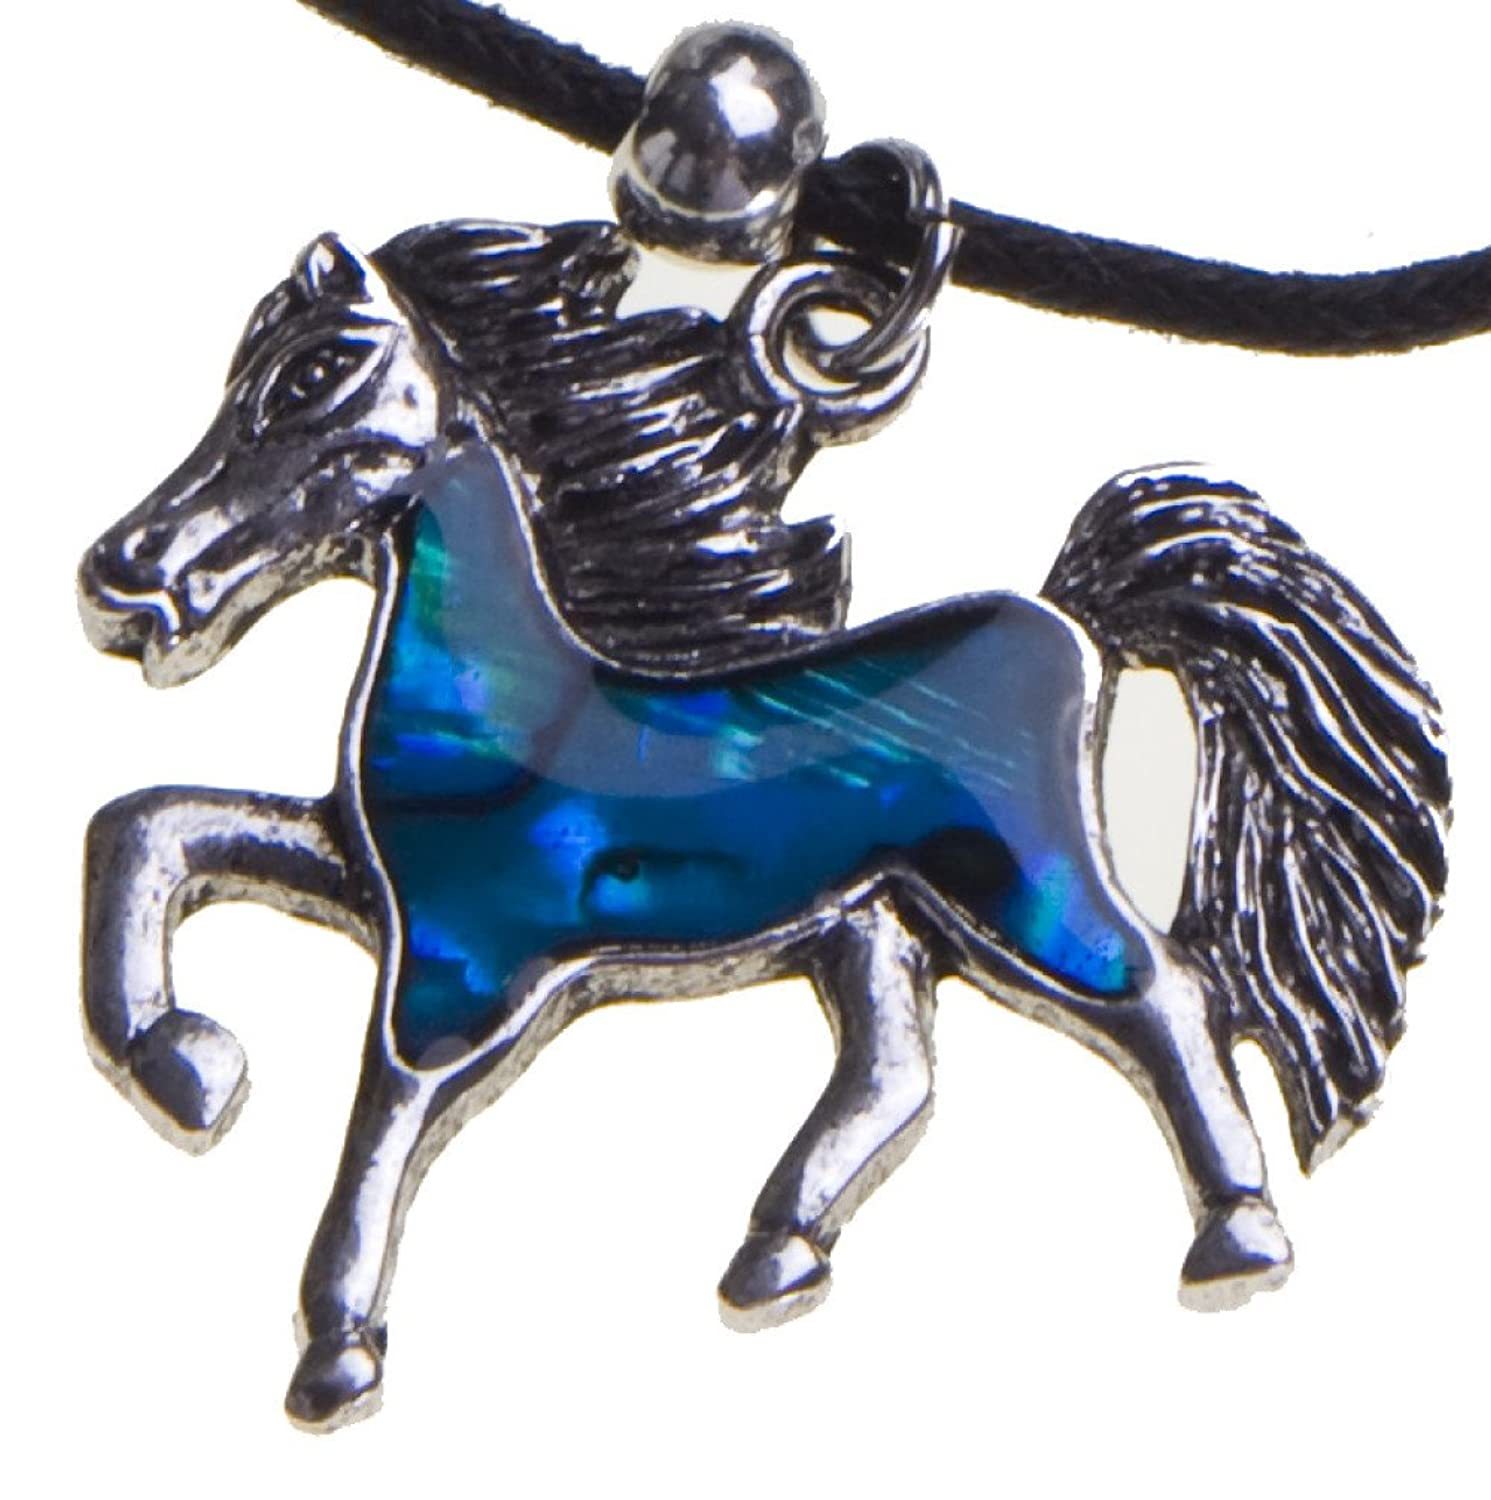 Blue Abalone Shell Horse Pendant Necklace Black Cord Chain Christmas Birthday Gift Jewelry